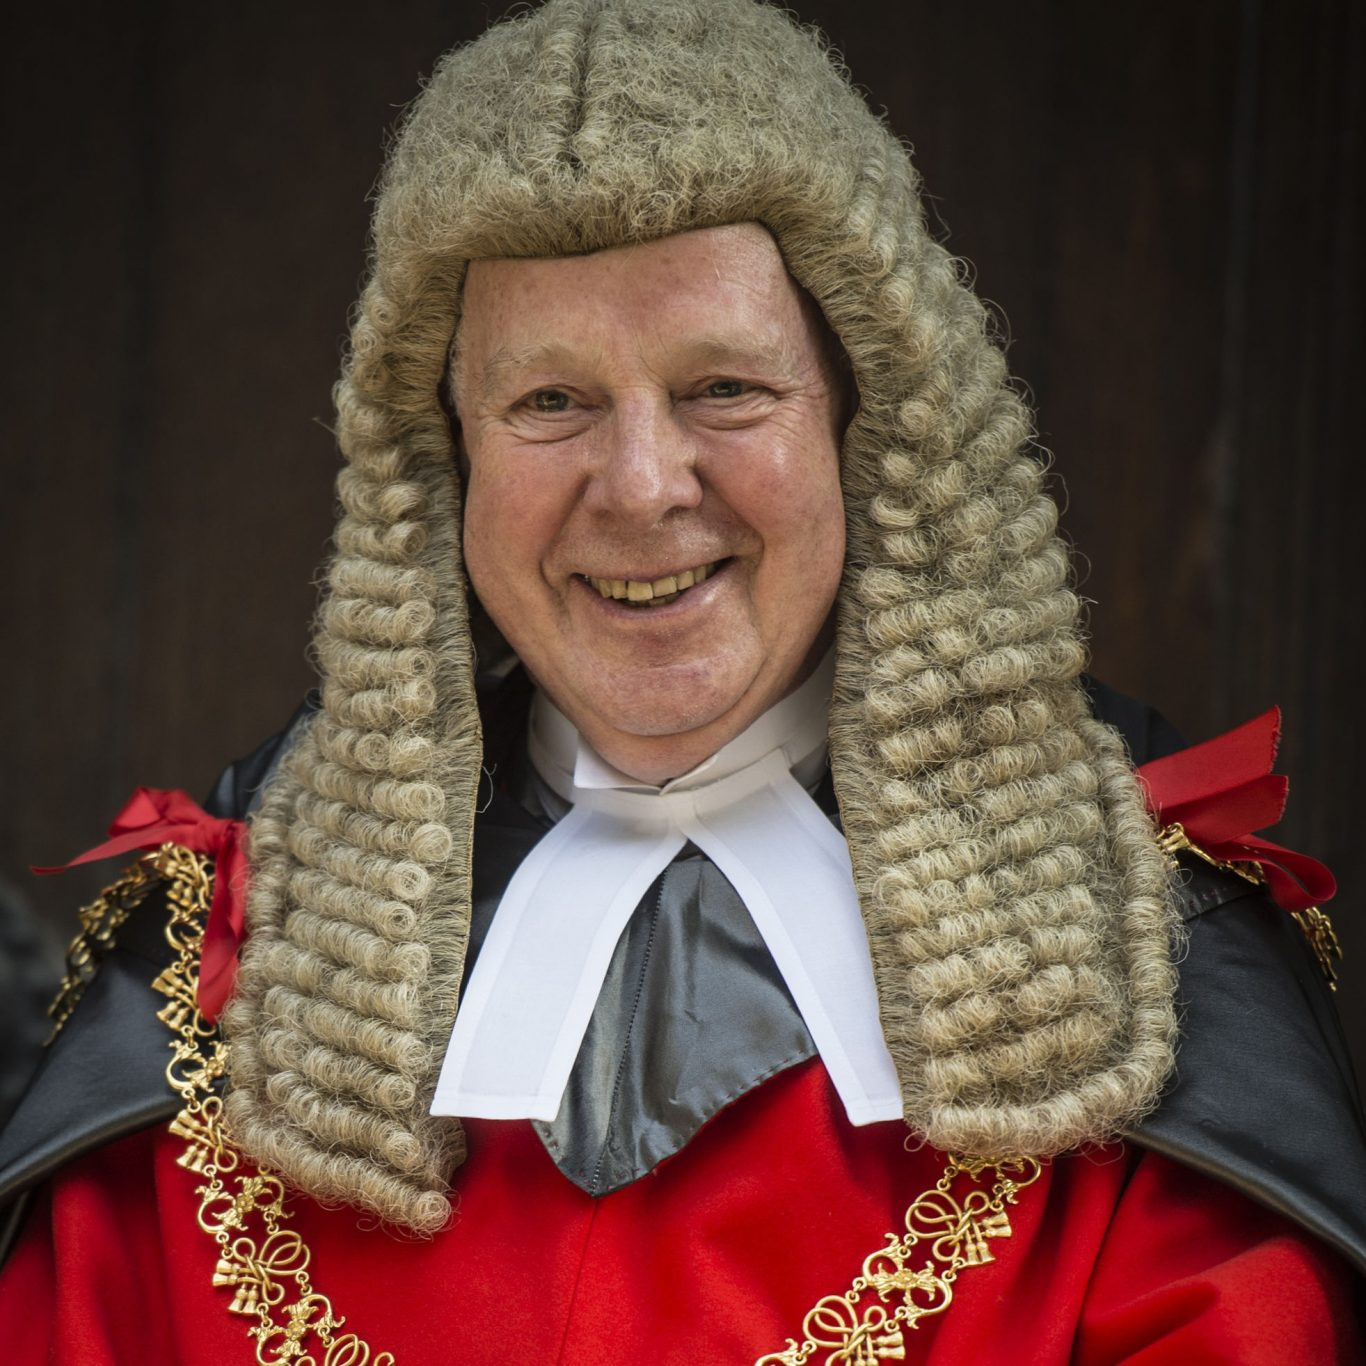 Lord Thomas has been replaced by Lord Justice Burnett after retiring (Lauren Hurley/PA)